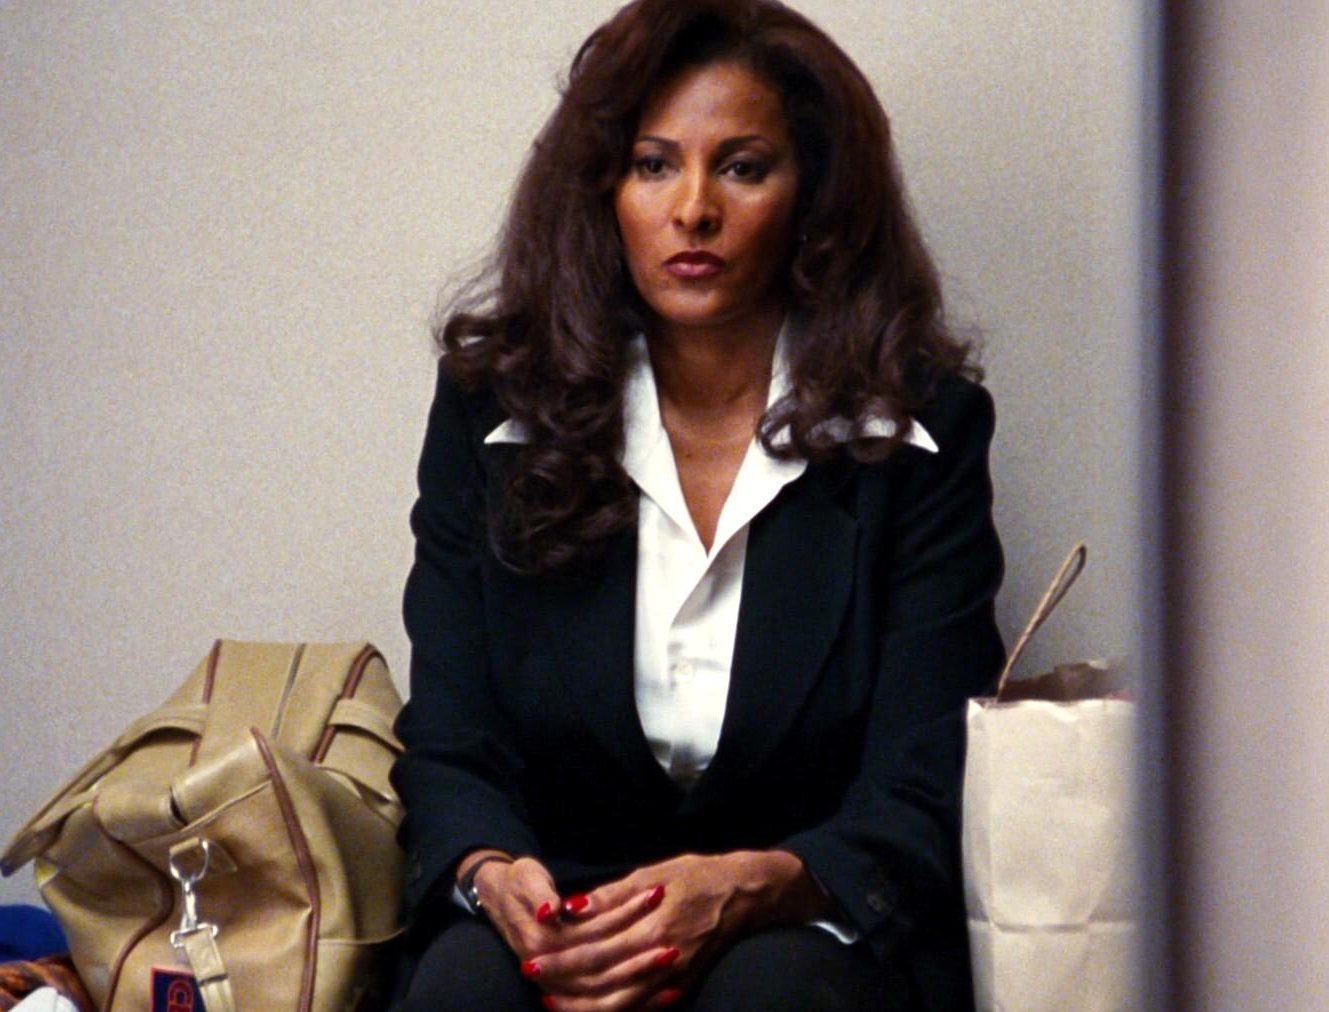 large.970590975 PamGrier JackieBrown.jpg.73afeefff1add96a42f6c4a577adcad4 e1614866794584 30 Things You Probably Didn't Know About Jackie Brown